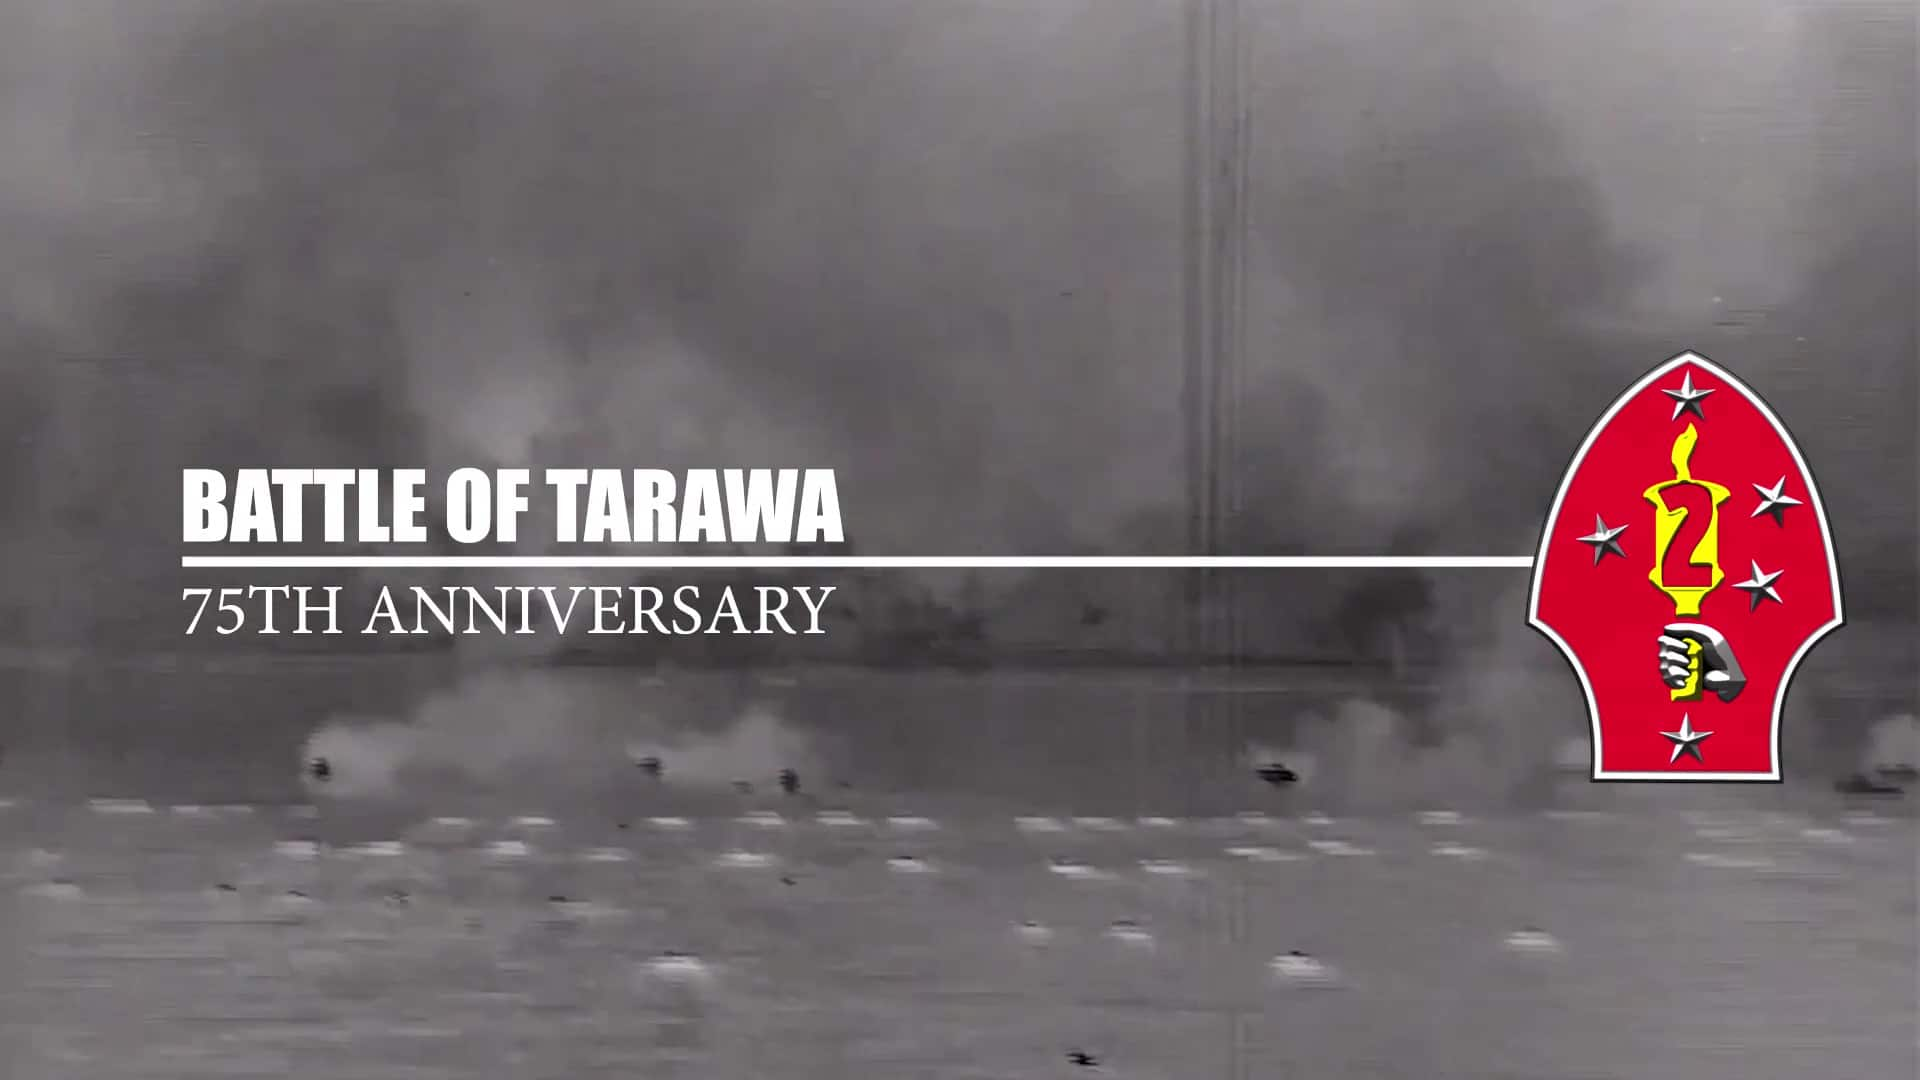 On Nov. 20, 1943, U.S. Marines and Sailors with 2nd Marine Division commenced the Battle of Tarawa, a major offensive during World War II. The ensuing 76-hour fight saw unprecedented bloodshed for both U.S. and Japanese forces.